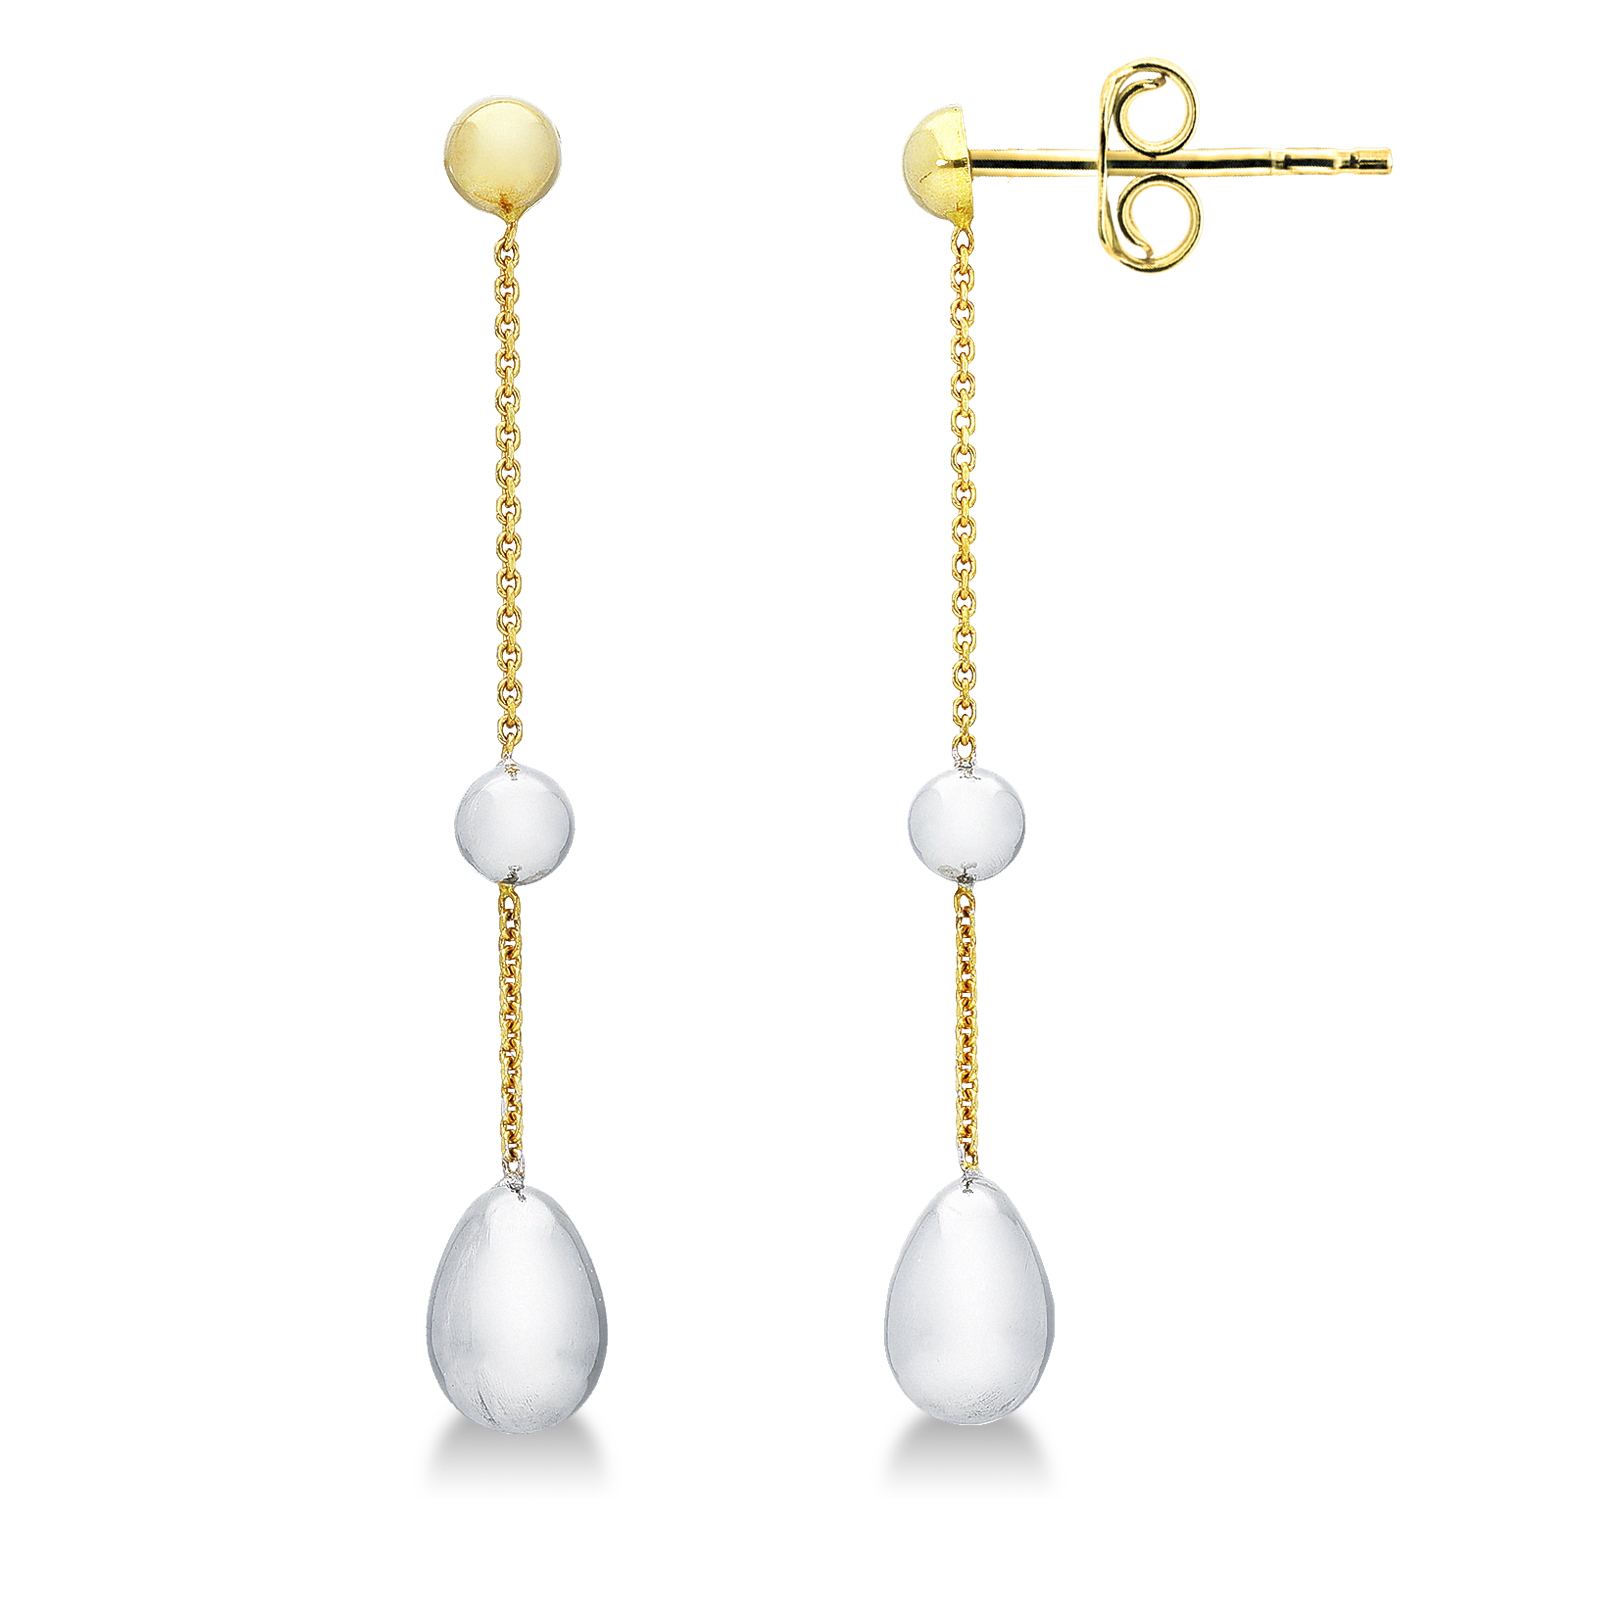 Earrings 18k White Gold, Gold with Pendant